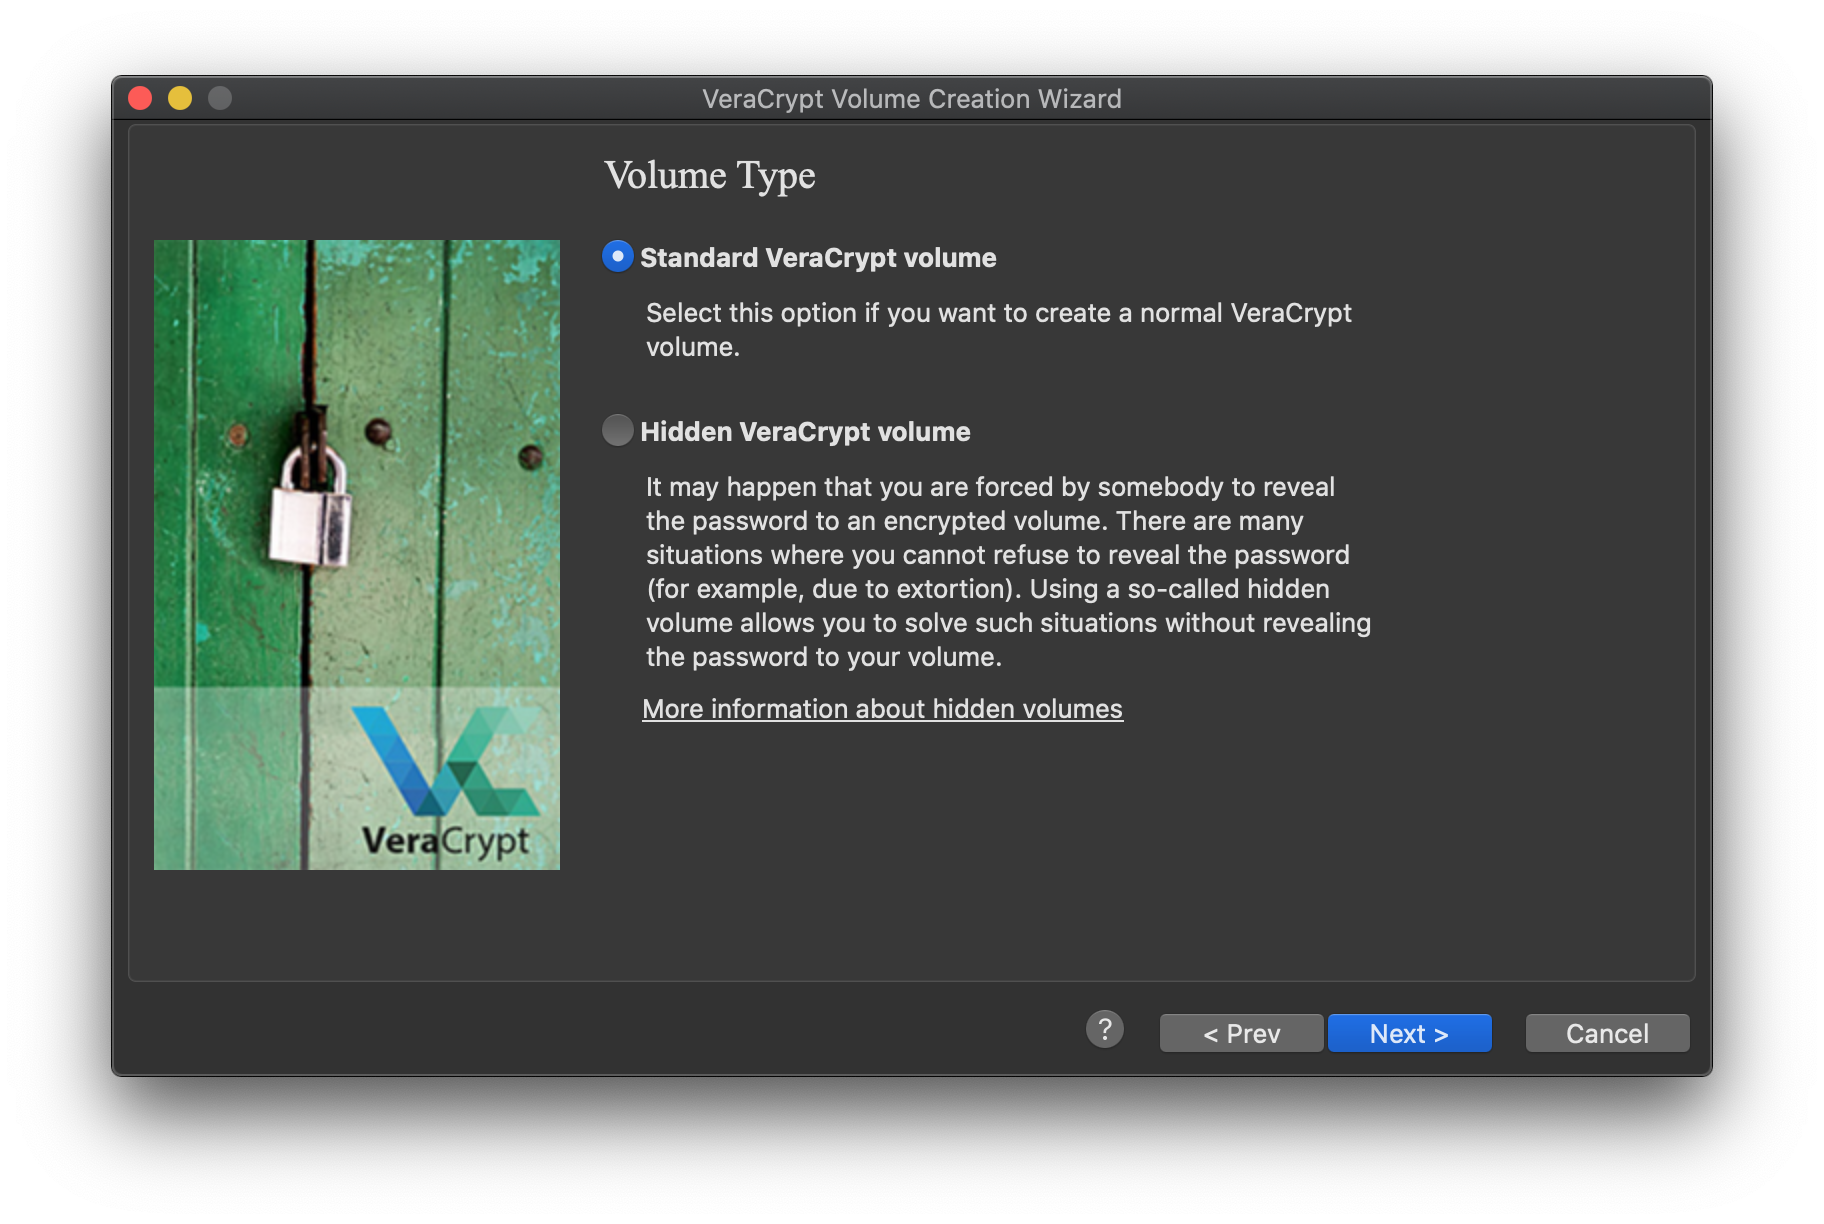 VeraCrypt create standard volume on a device or partition option selected